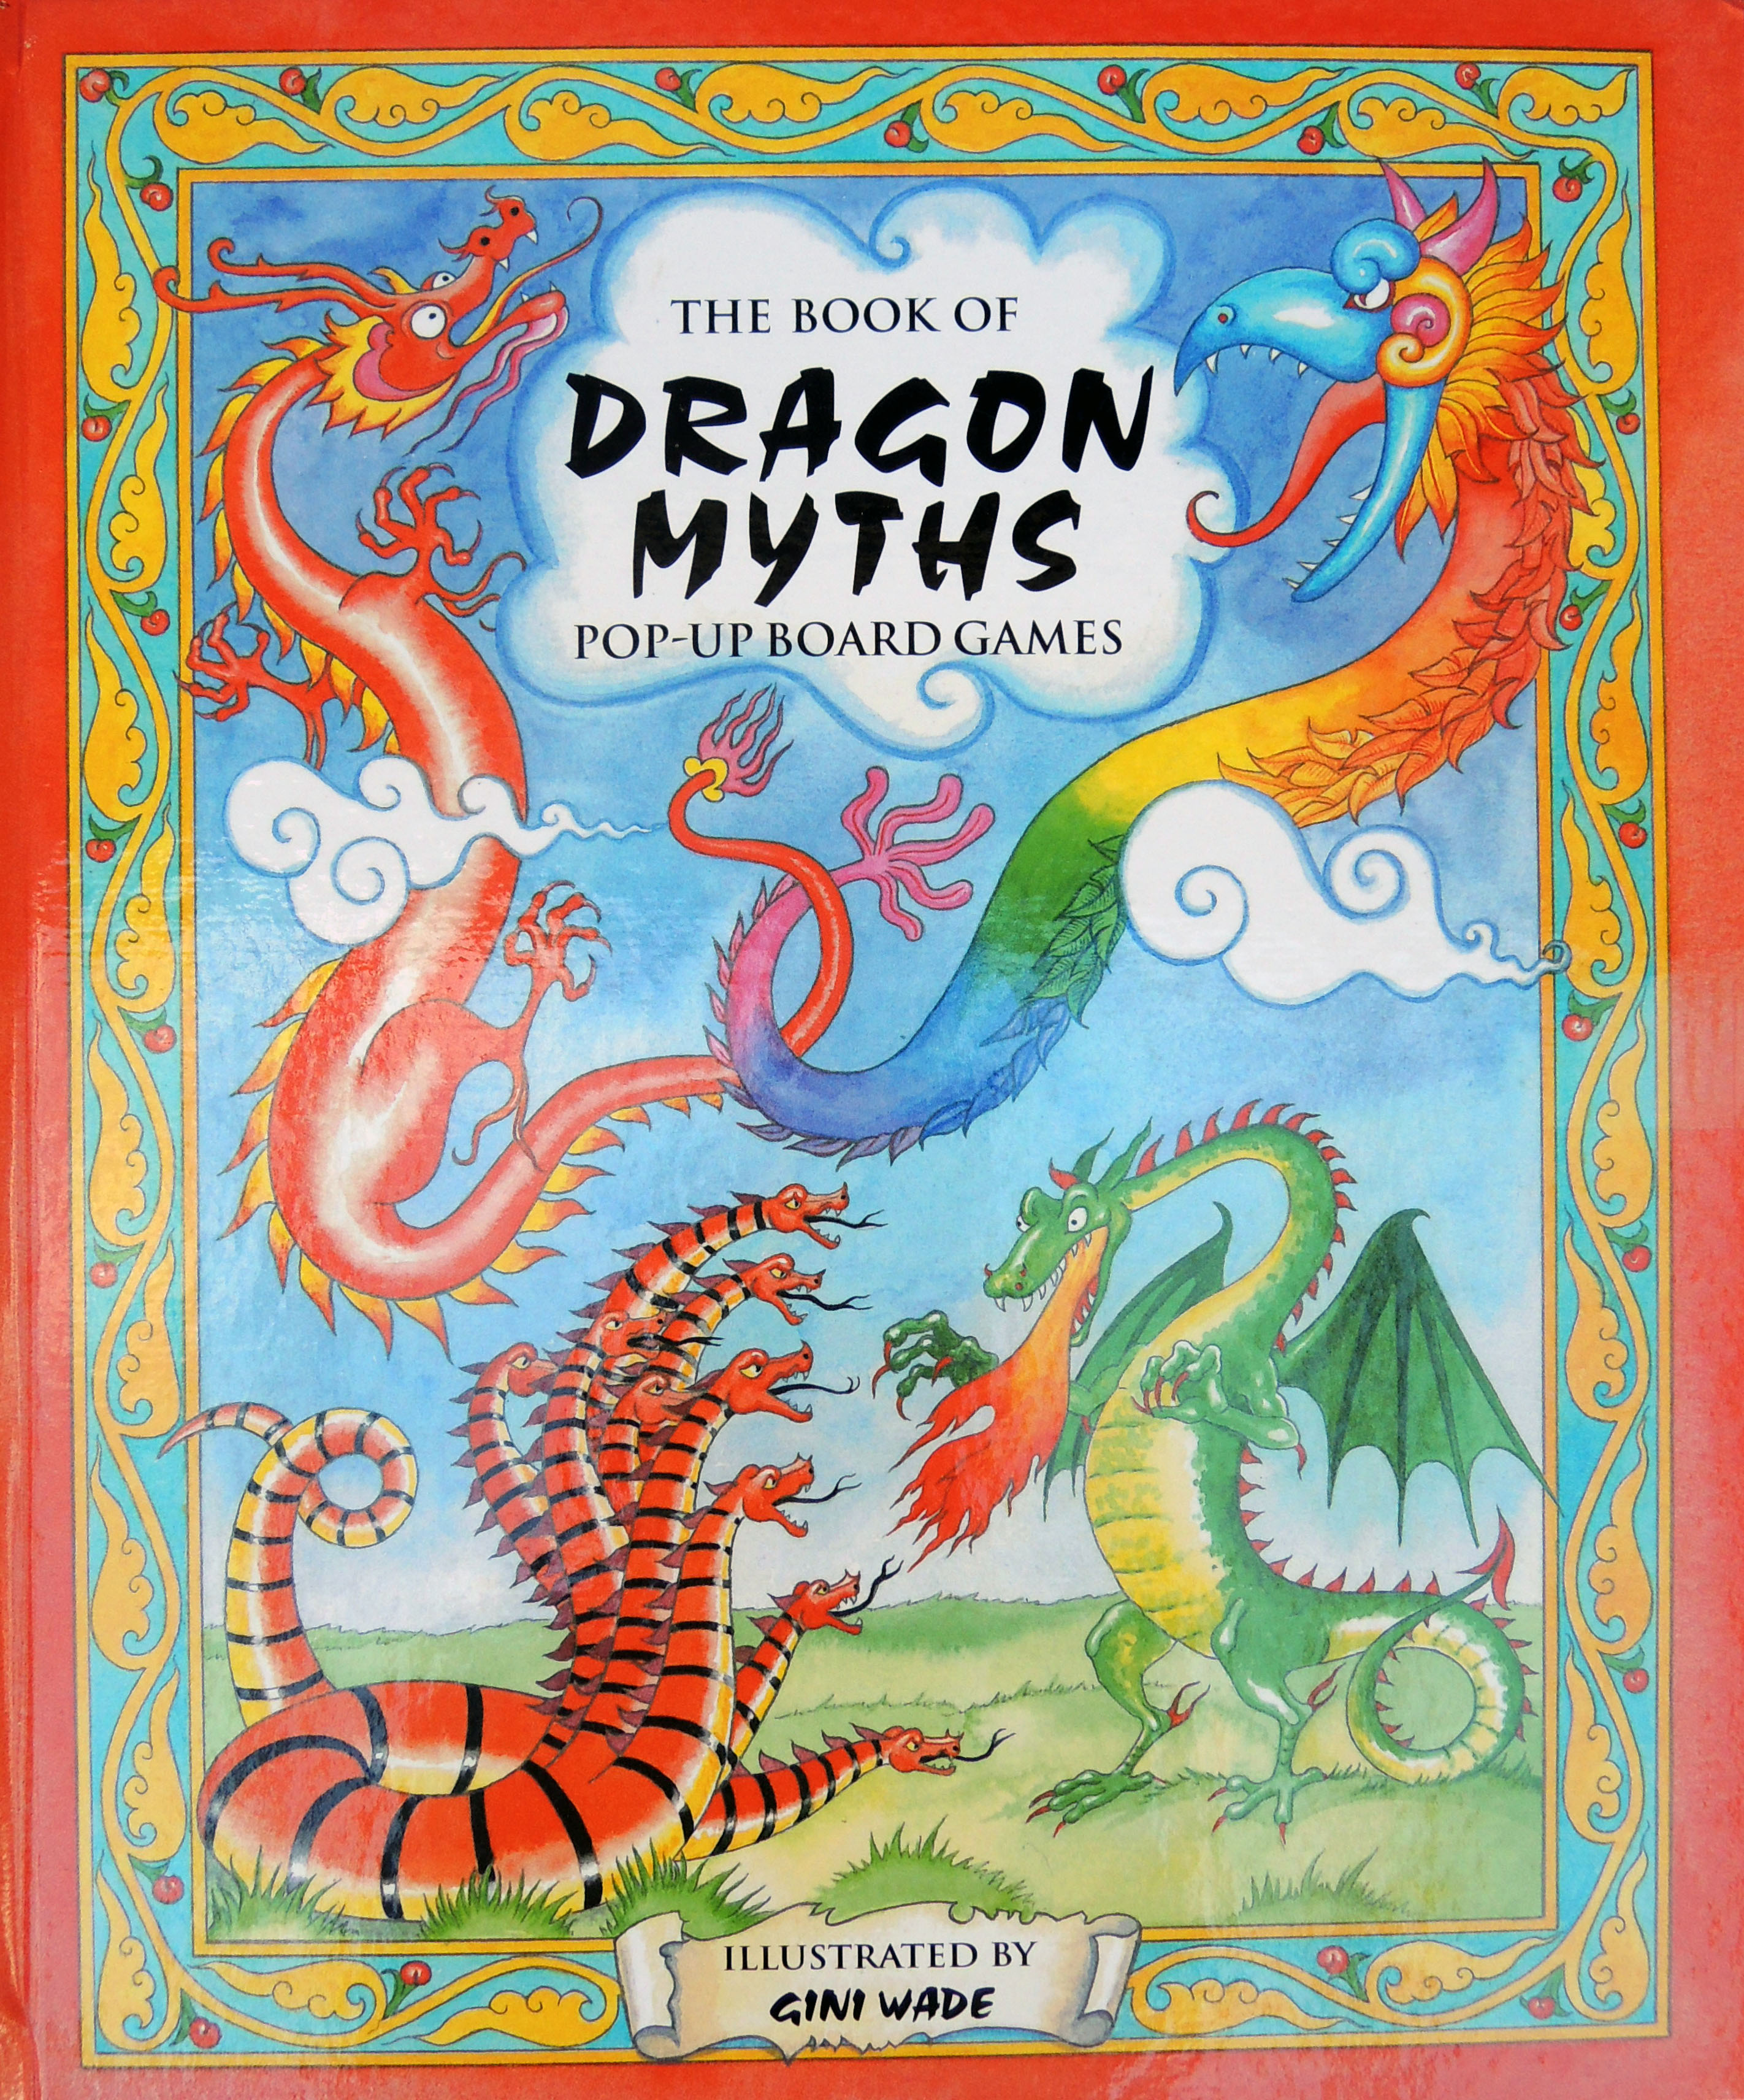 The Book of Dragon Myths 2008